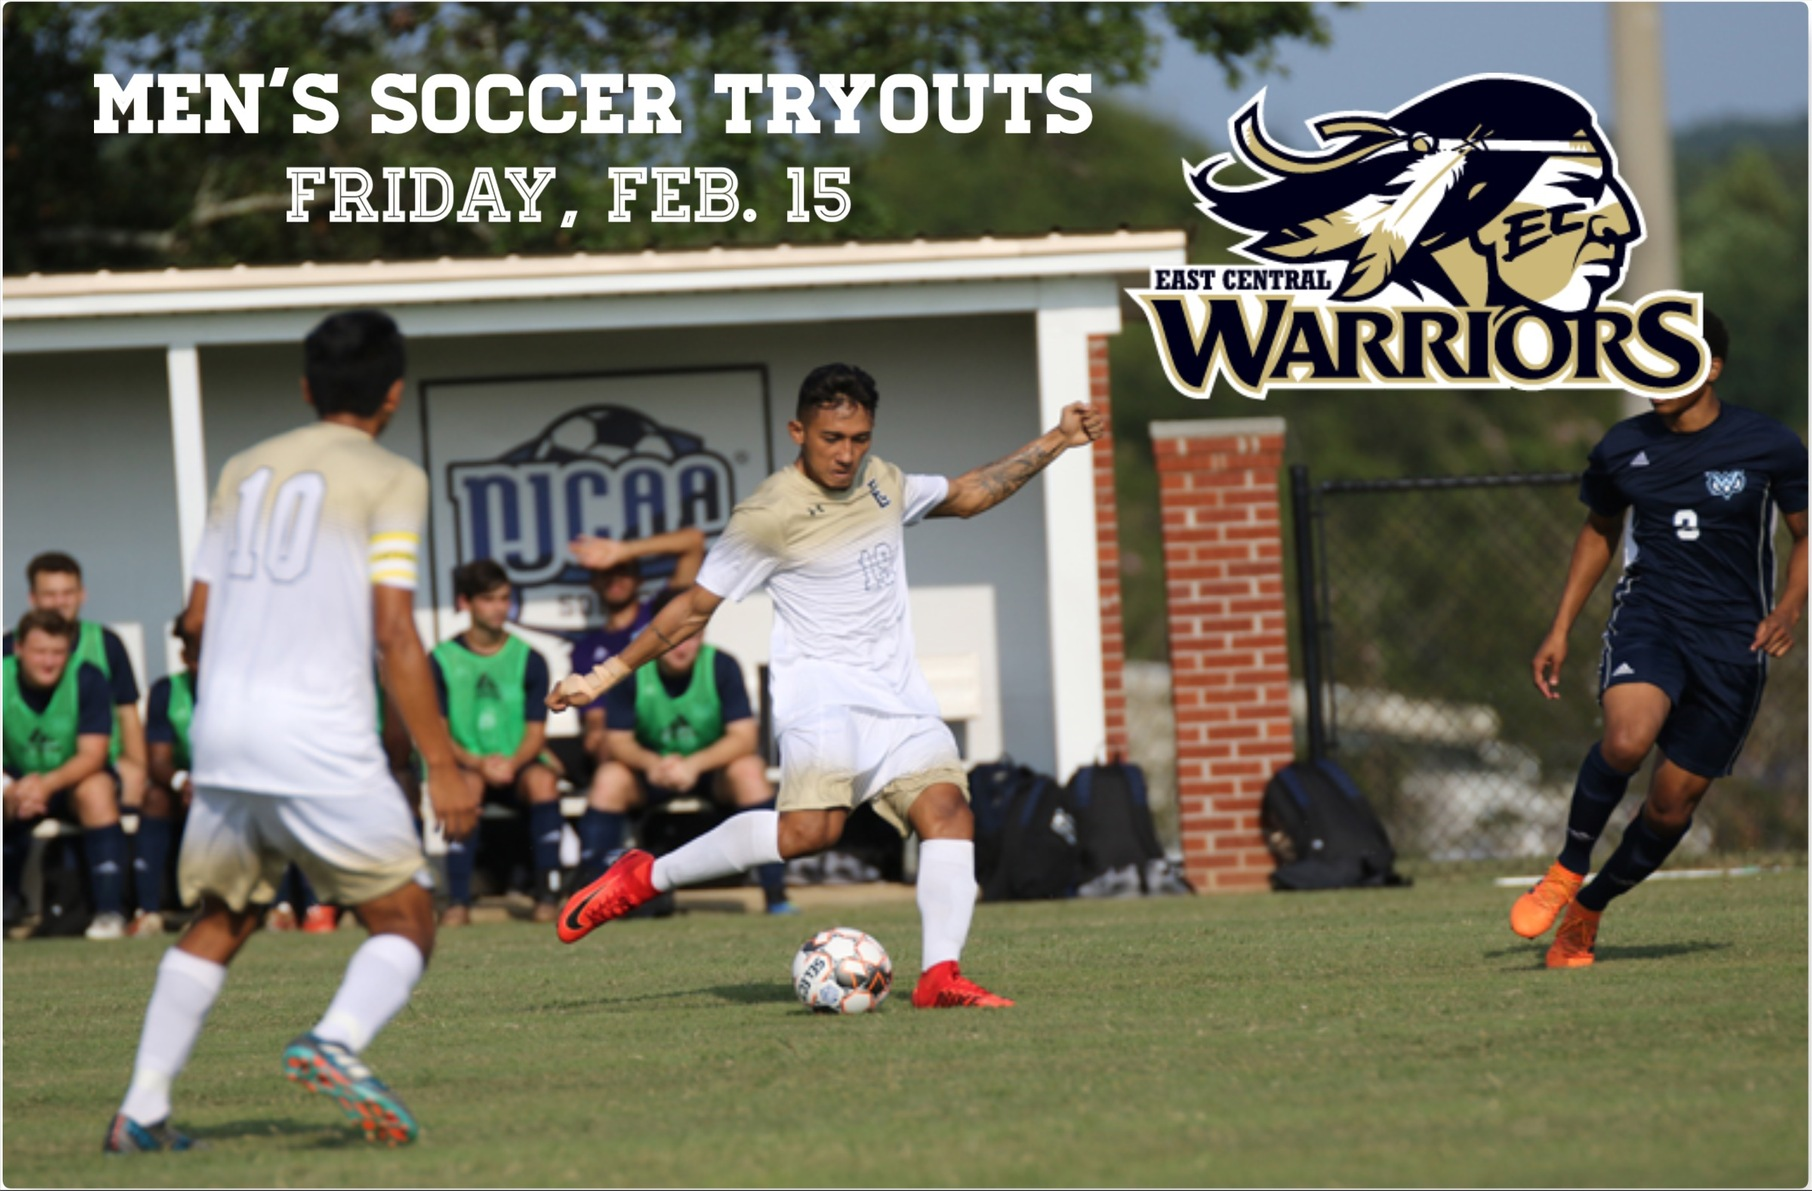 ECCC Men's Soccer Program to Hold Open Tryout Feb. 15